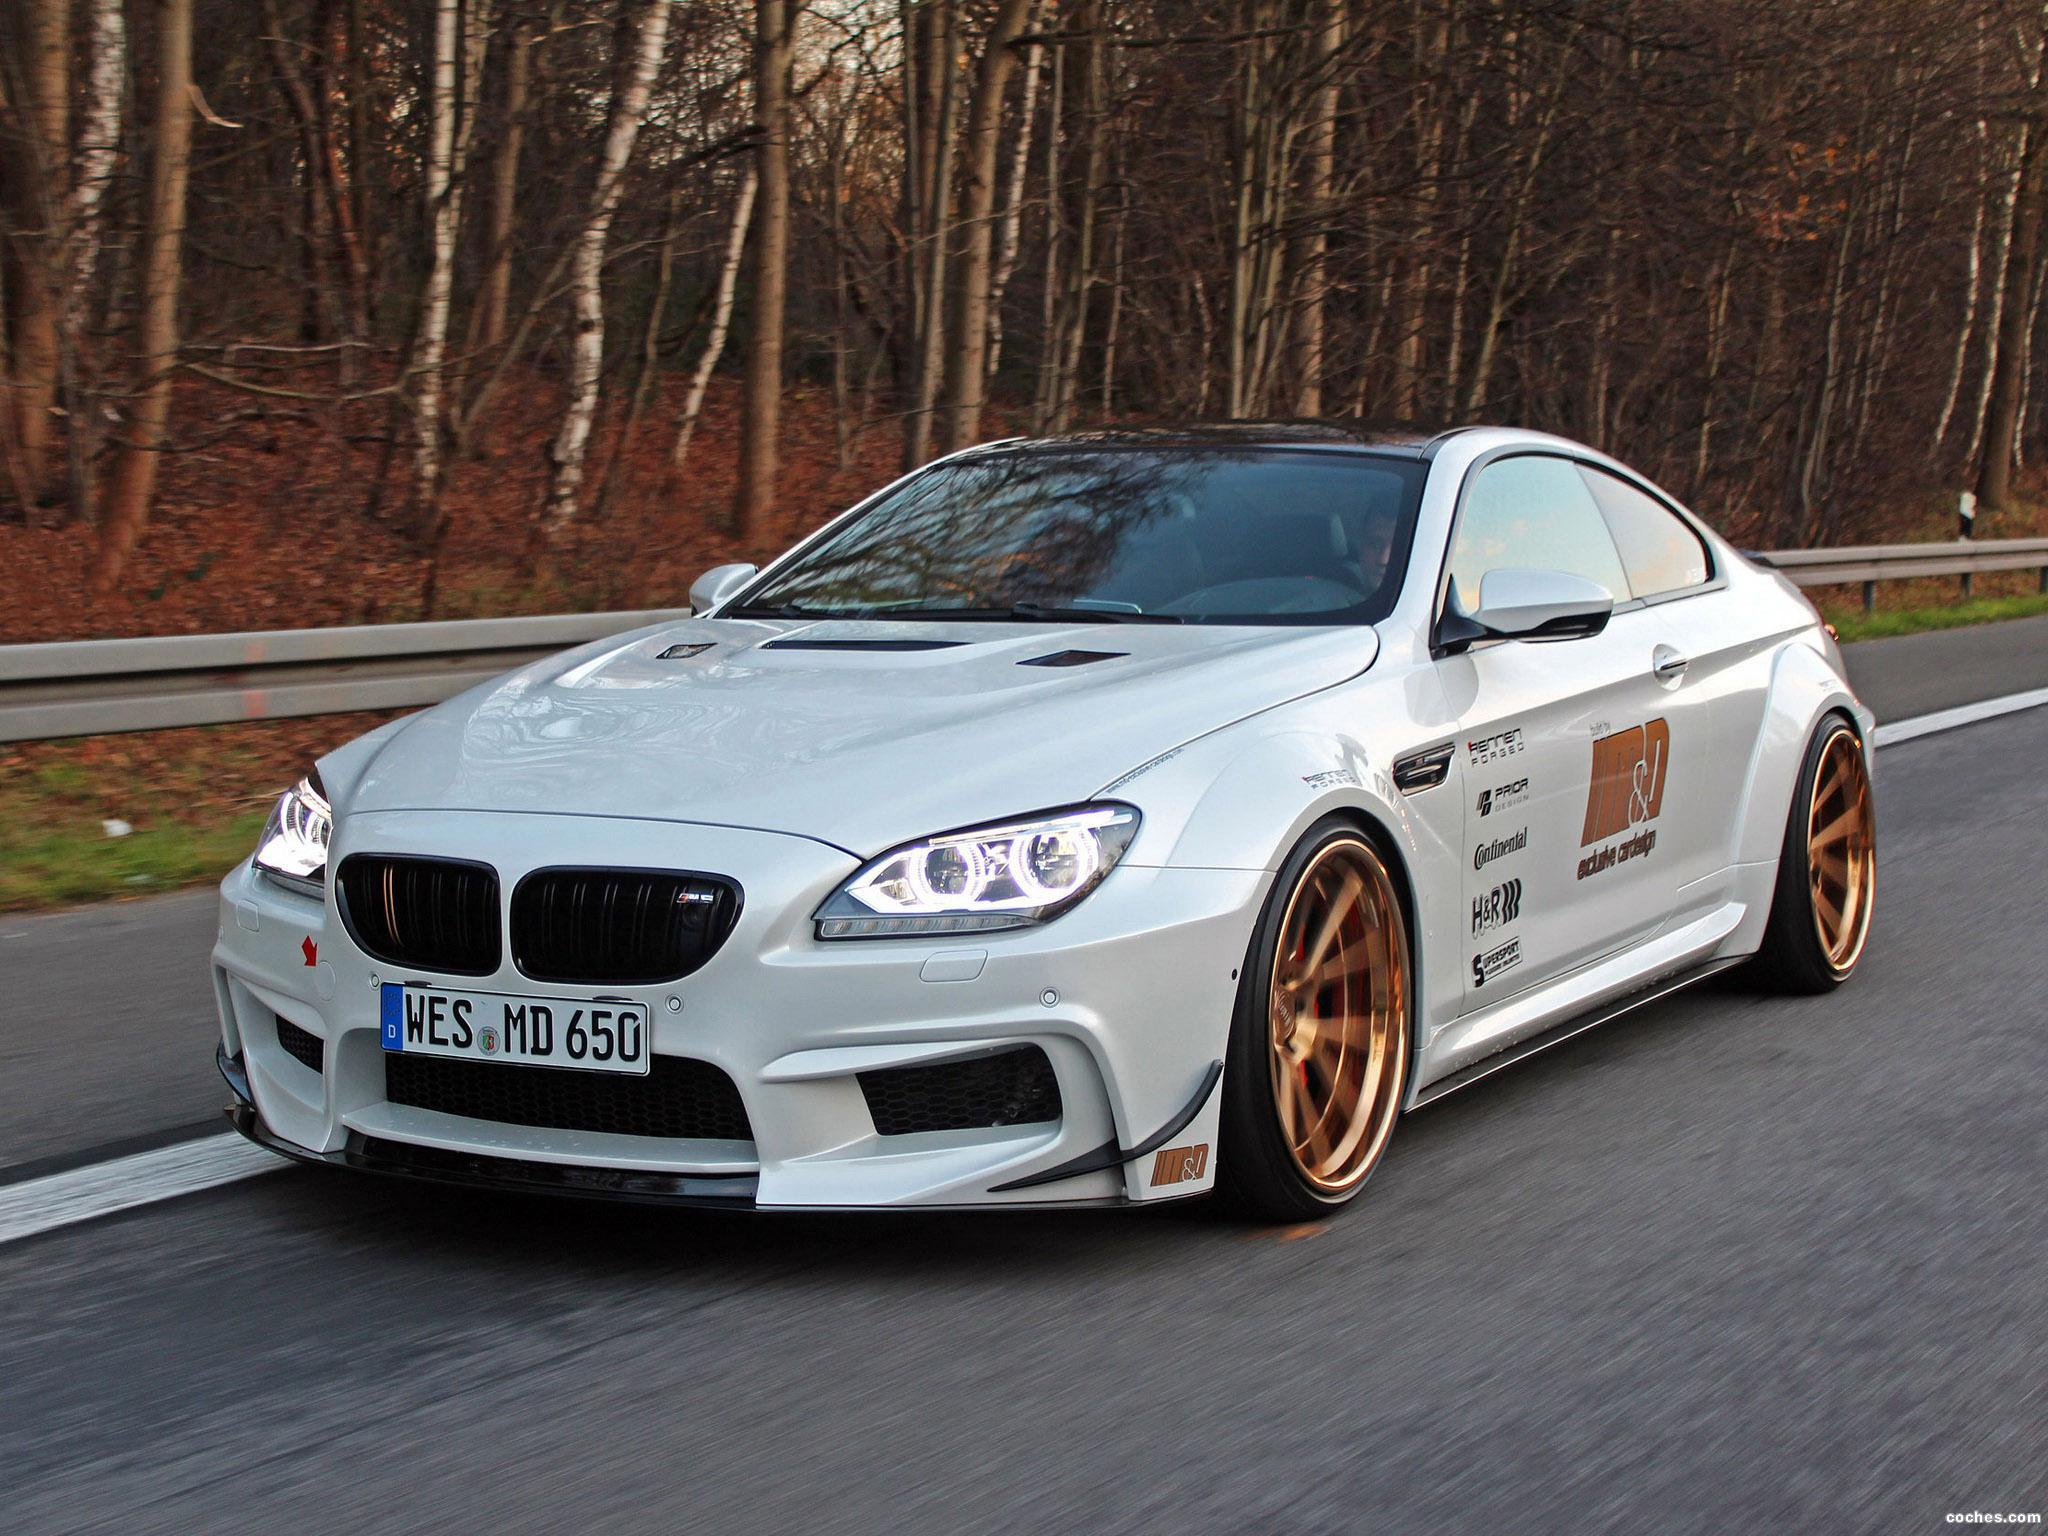 Foto 0 de BMW Serie 6 650i Coupe M & D Exclusive Cardesign F13 2014